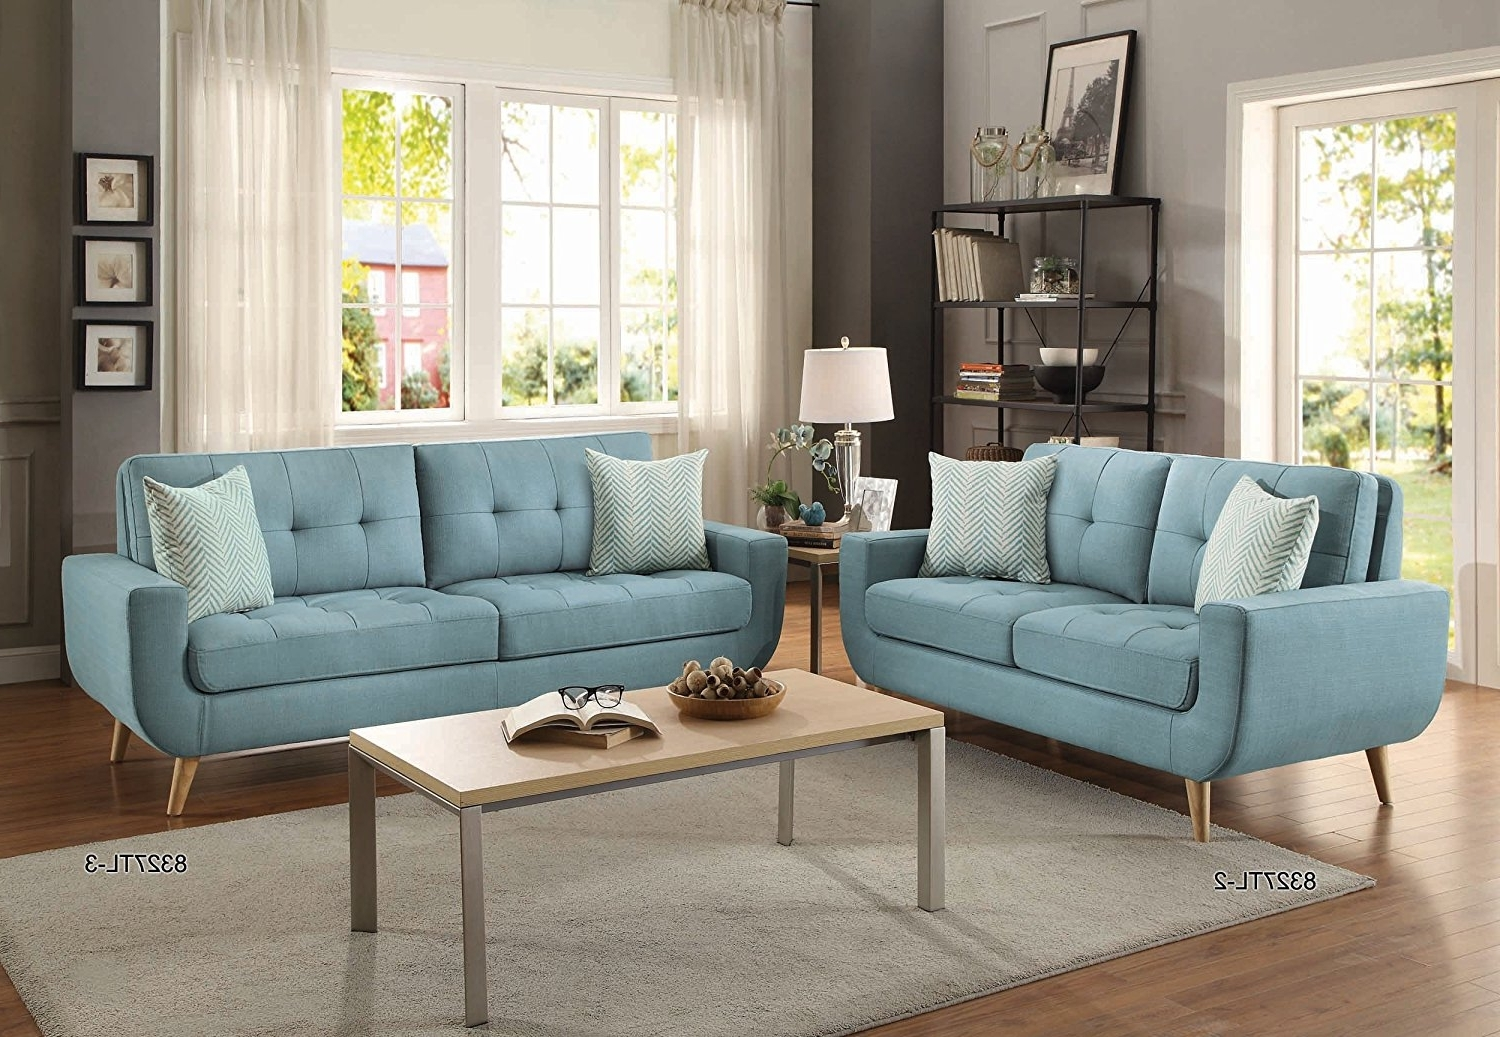 Sectional Sofas At Barrie Throughout Favorite Furniture : Klaussner Hybrid Sofa Sofa Sale January Klaussner (View 6 of 20)